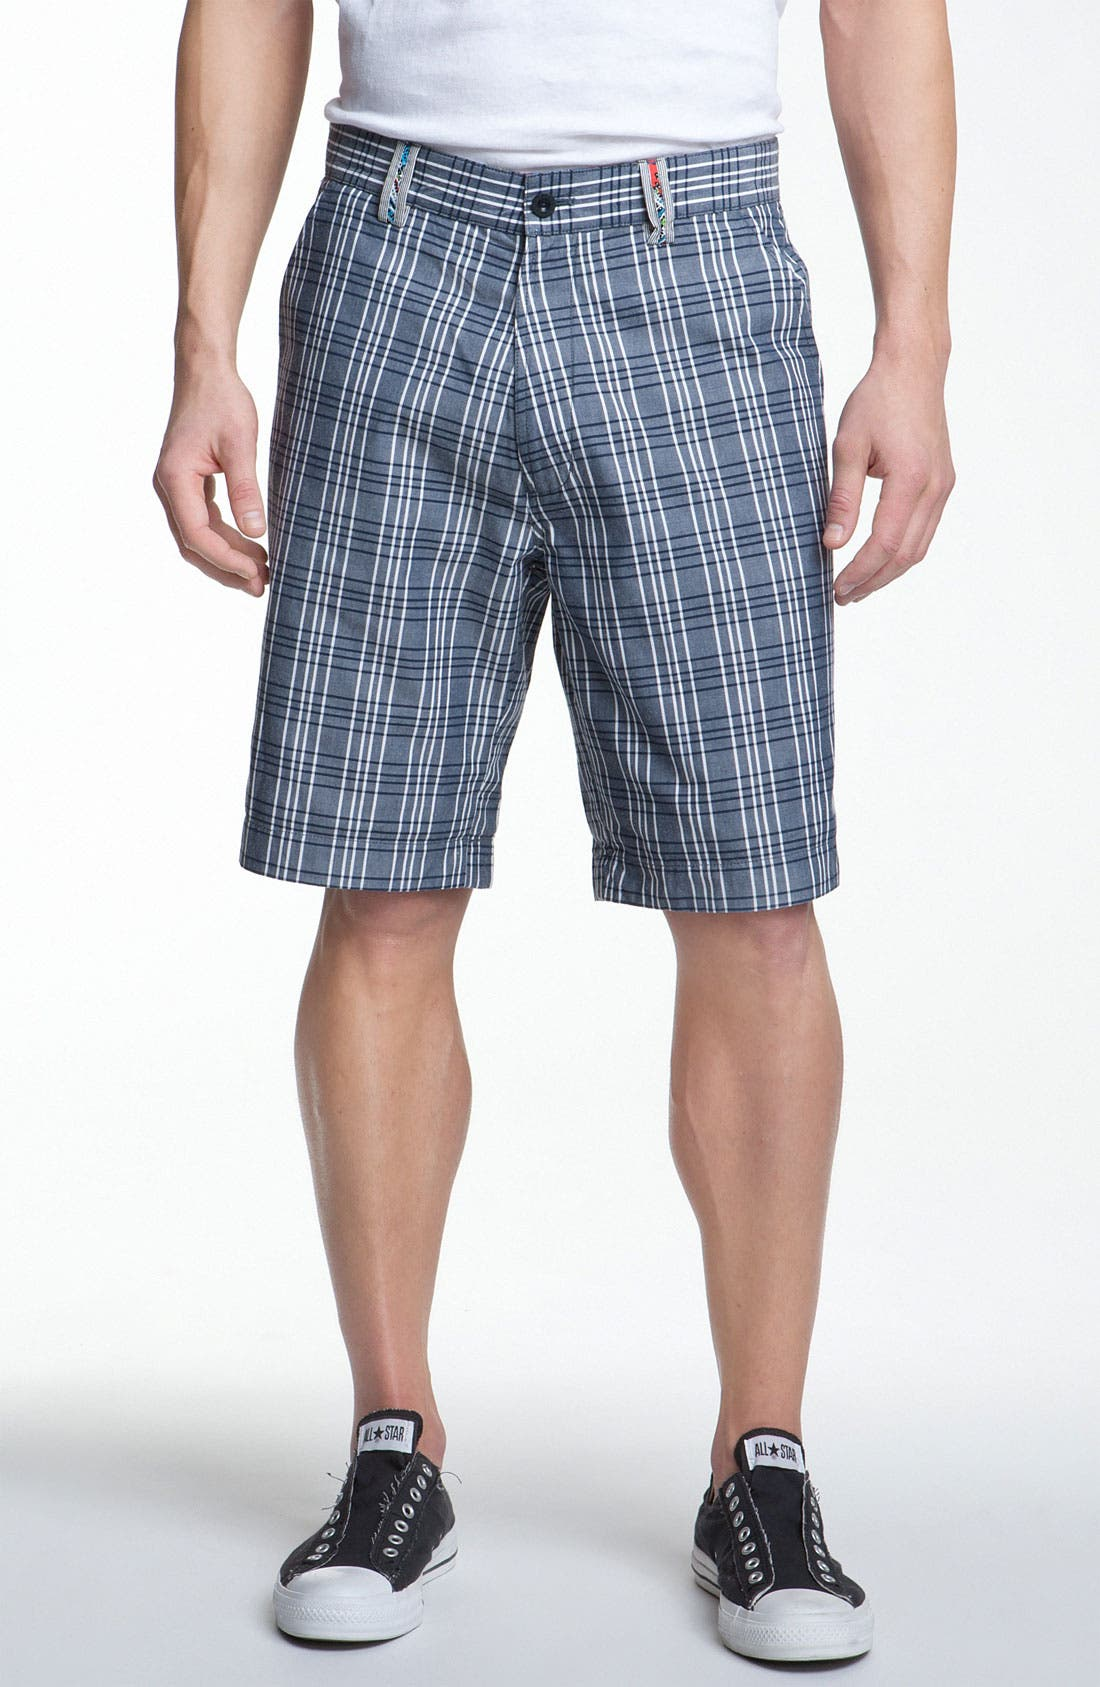 Alternate Image 1 Selected - Robert Graham 'Pan' Shorts